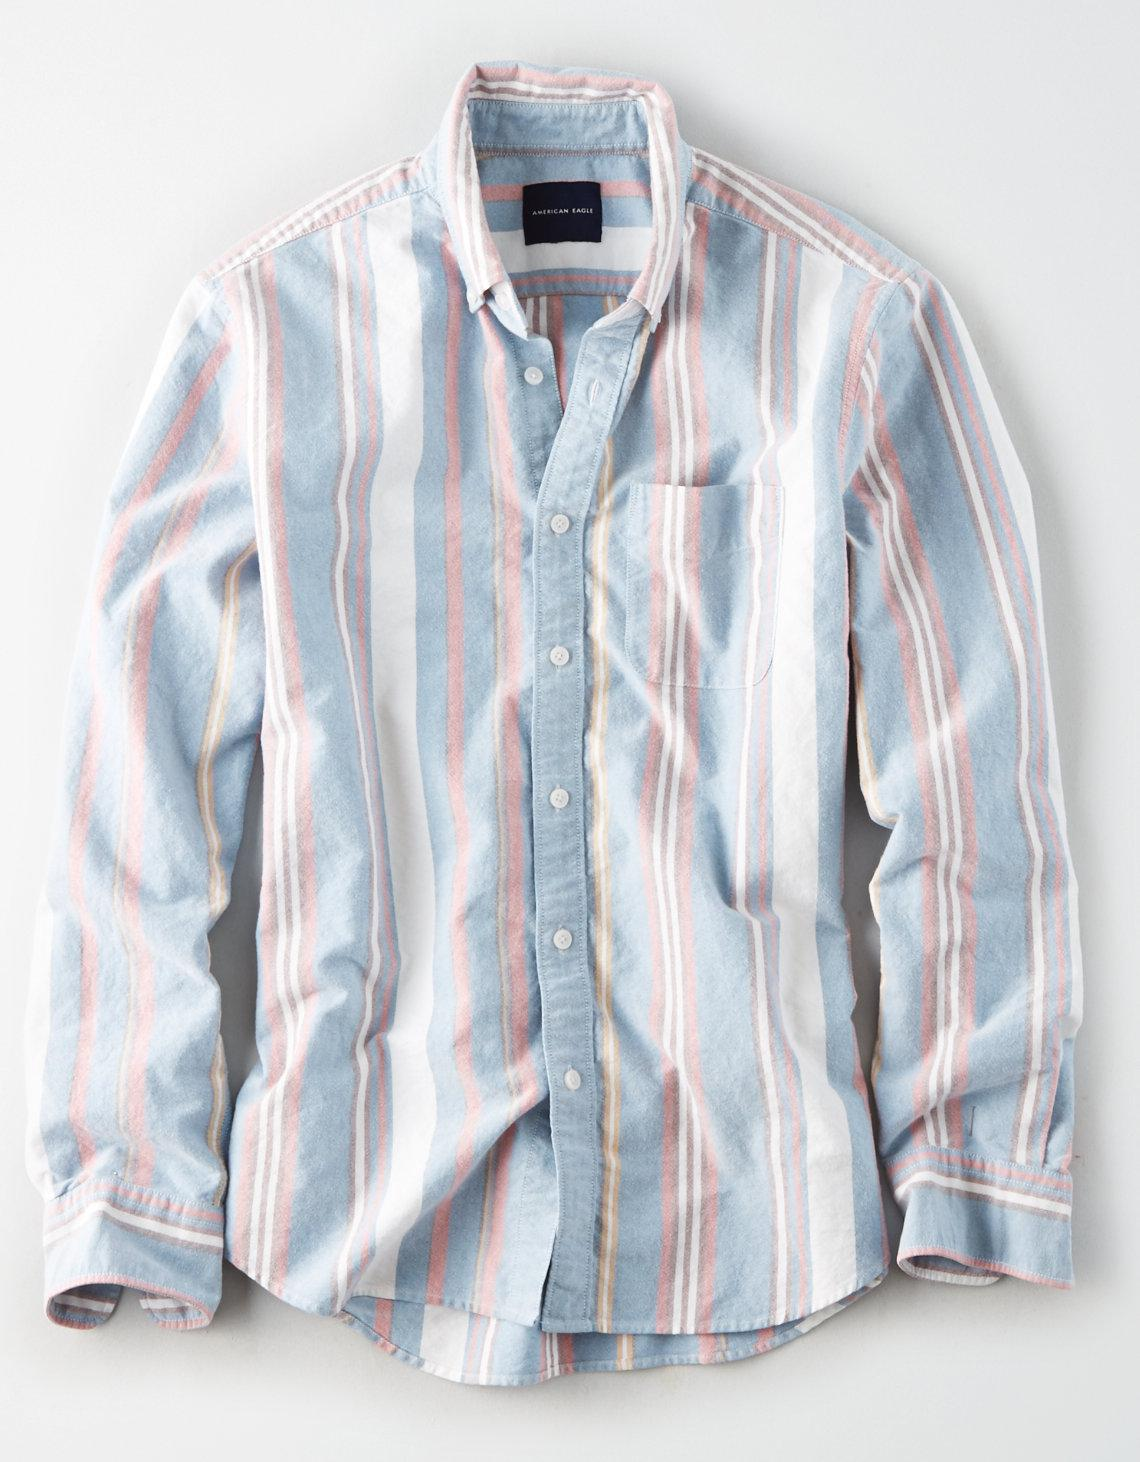 fa75c6c0 American Eagle Ae Seriously Soft Oxford Button Down Shirt in Blue ...